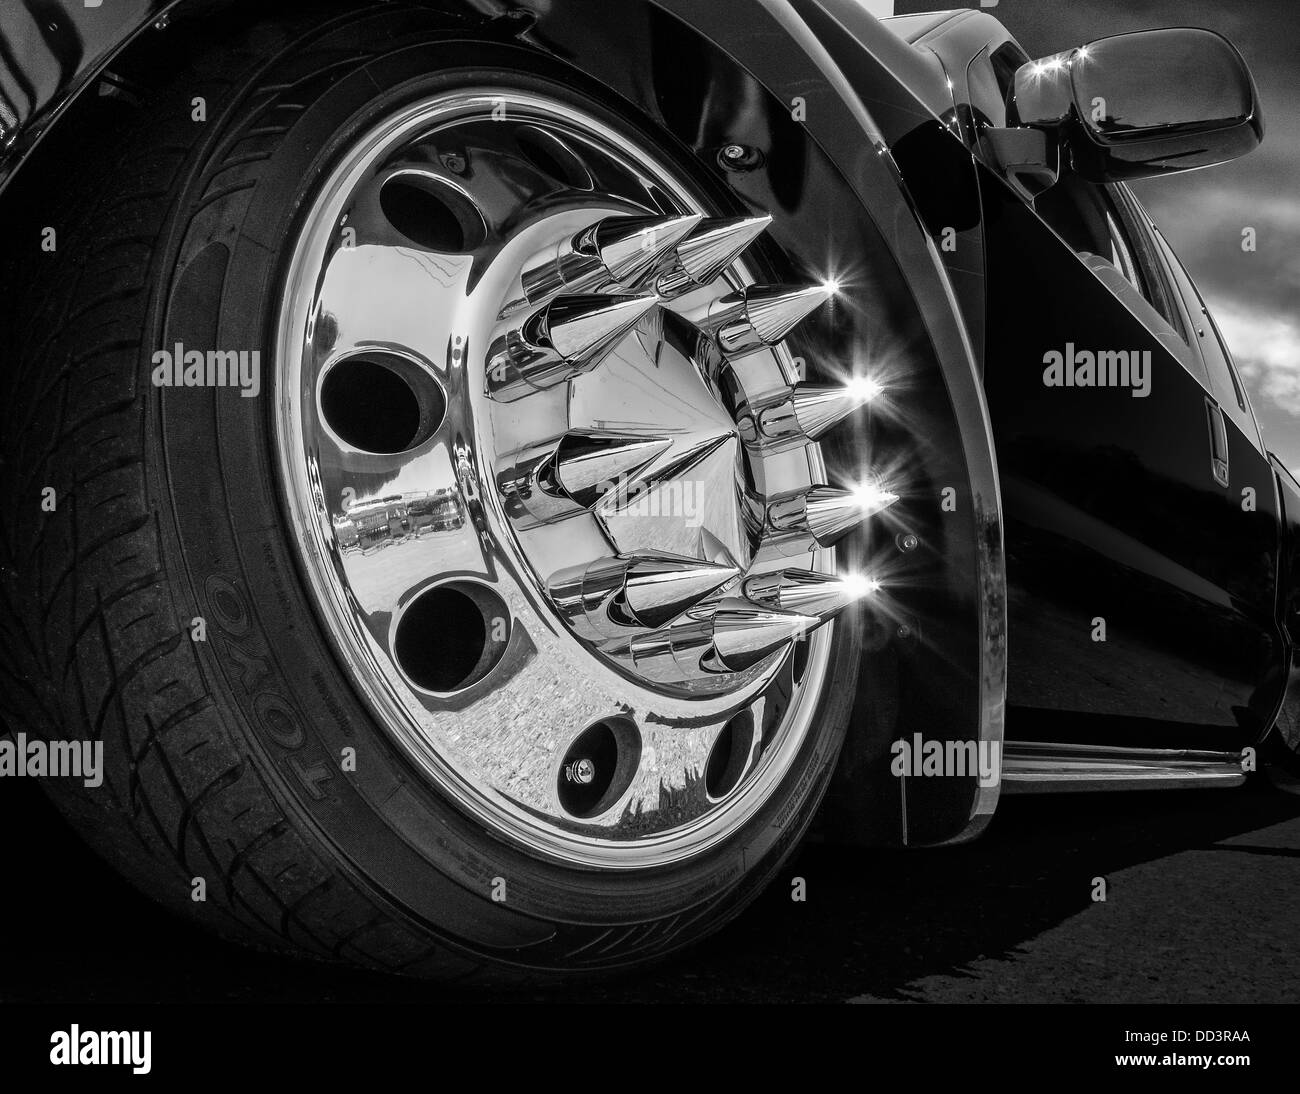 A spike tipped truck wheel at a custom car show - Stock Image